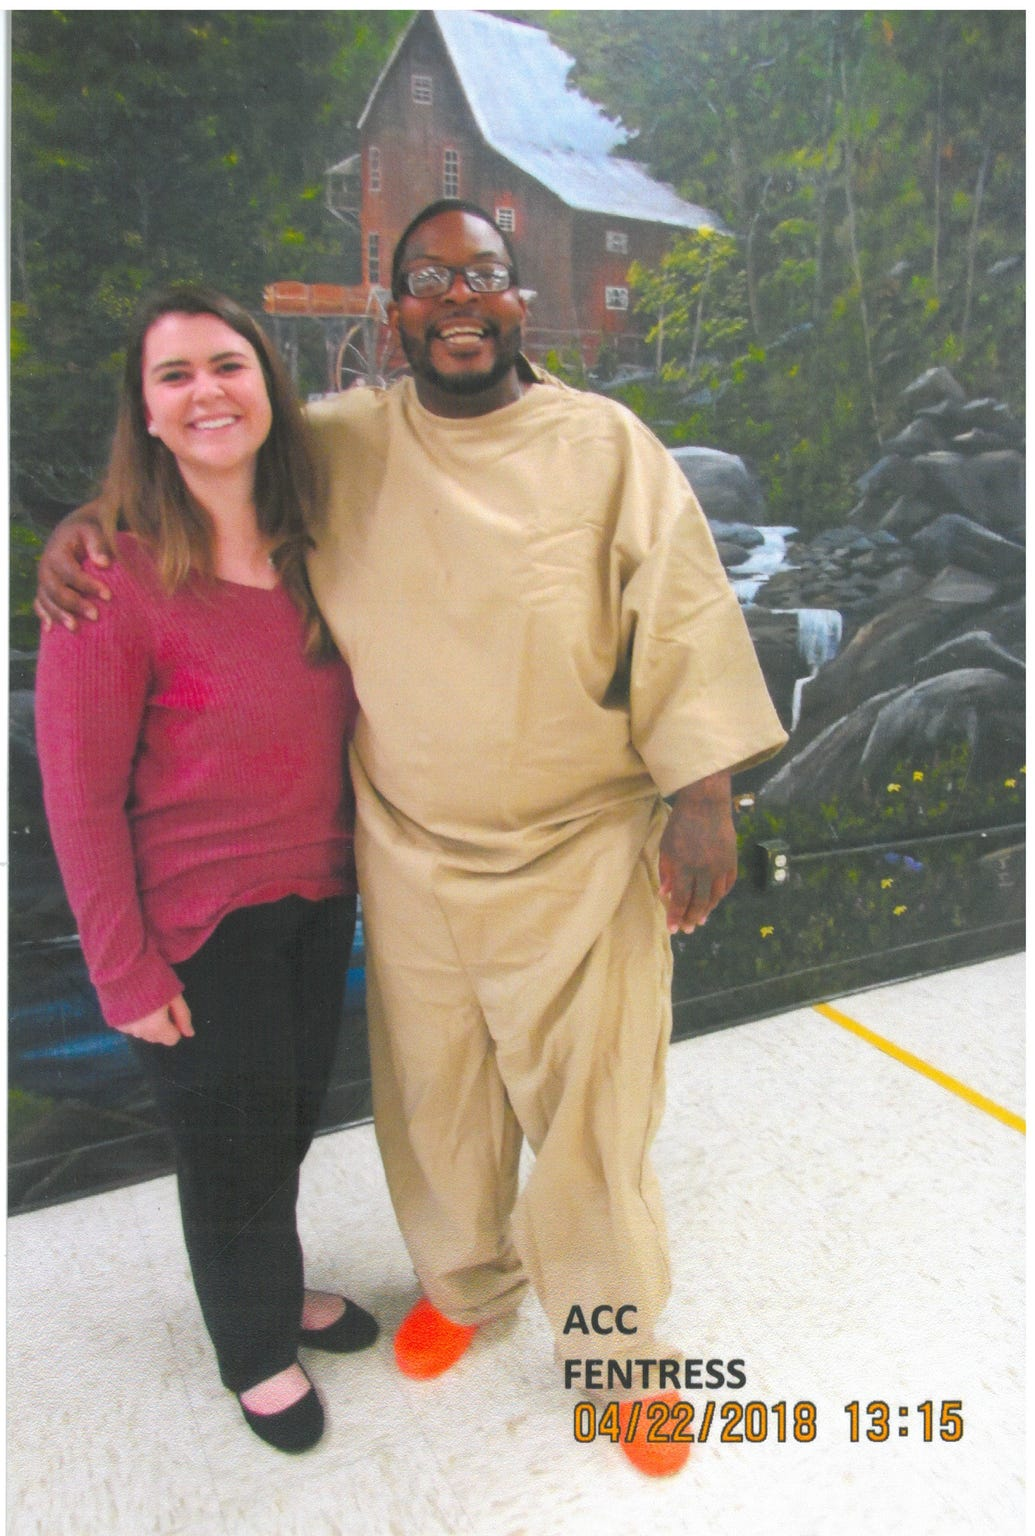 Rojai Fentress and law student Amy Fly, at Augusta Correctional Center, in April 2018.